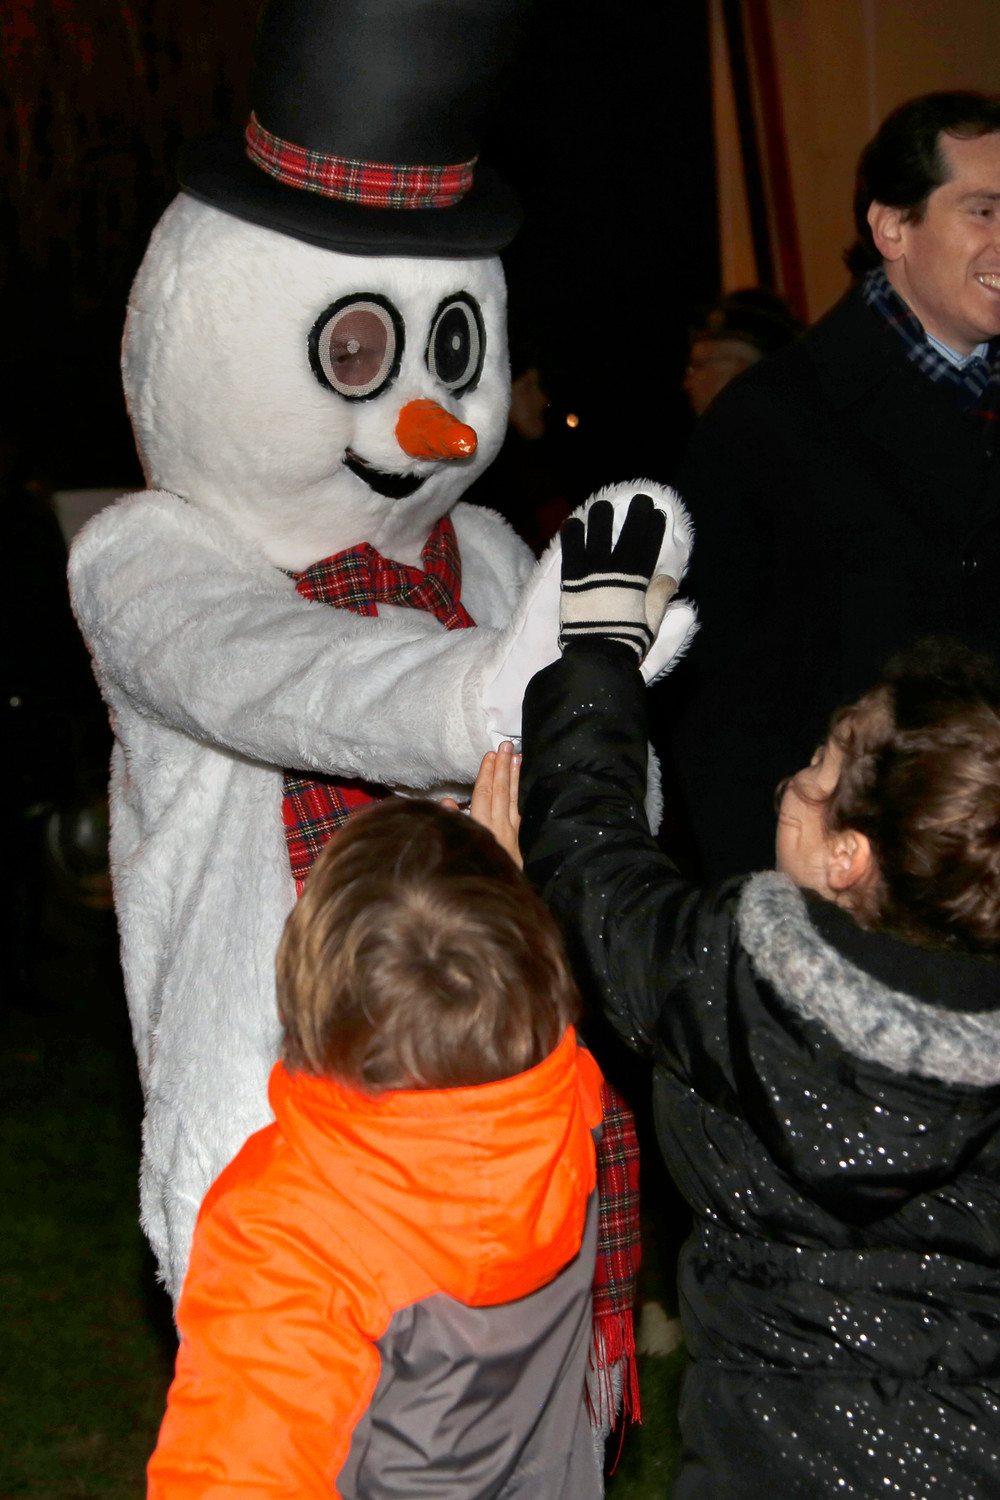 Frosty the Snowman greeted children at the lighting.